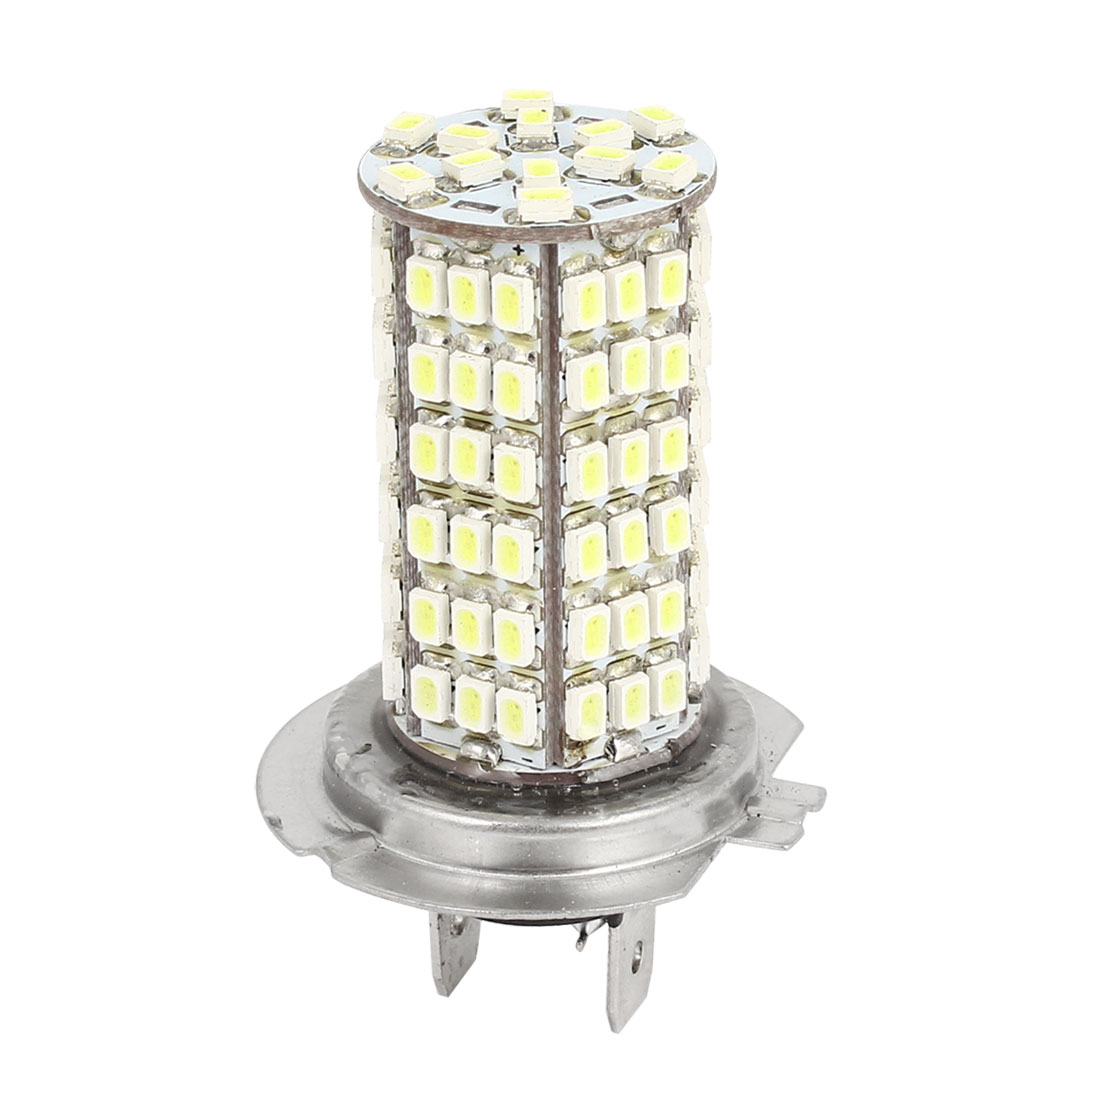 Car White LED 120 SMD 3528 Bulbs H7 Fog Daytime Light Lamp